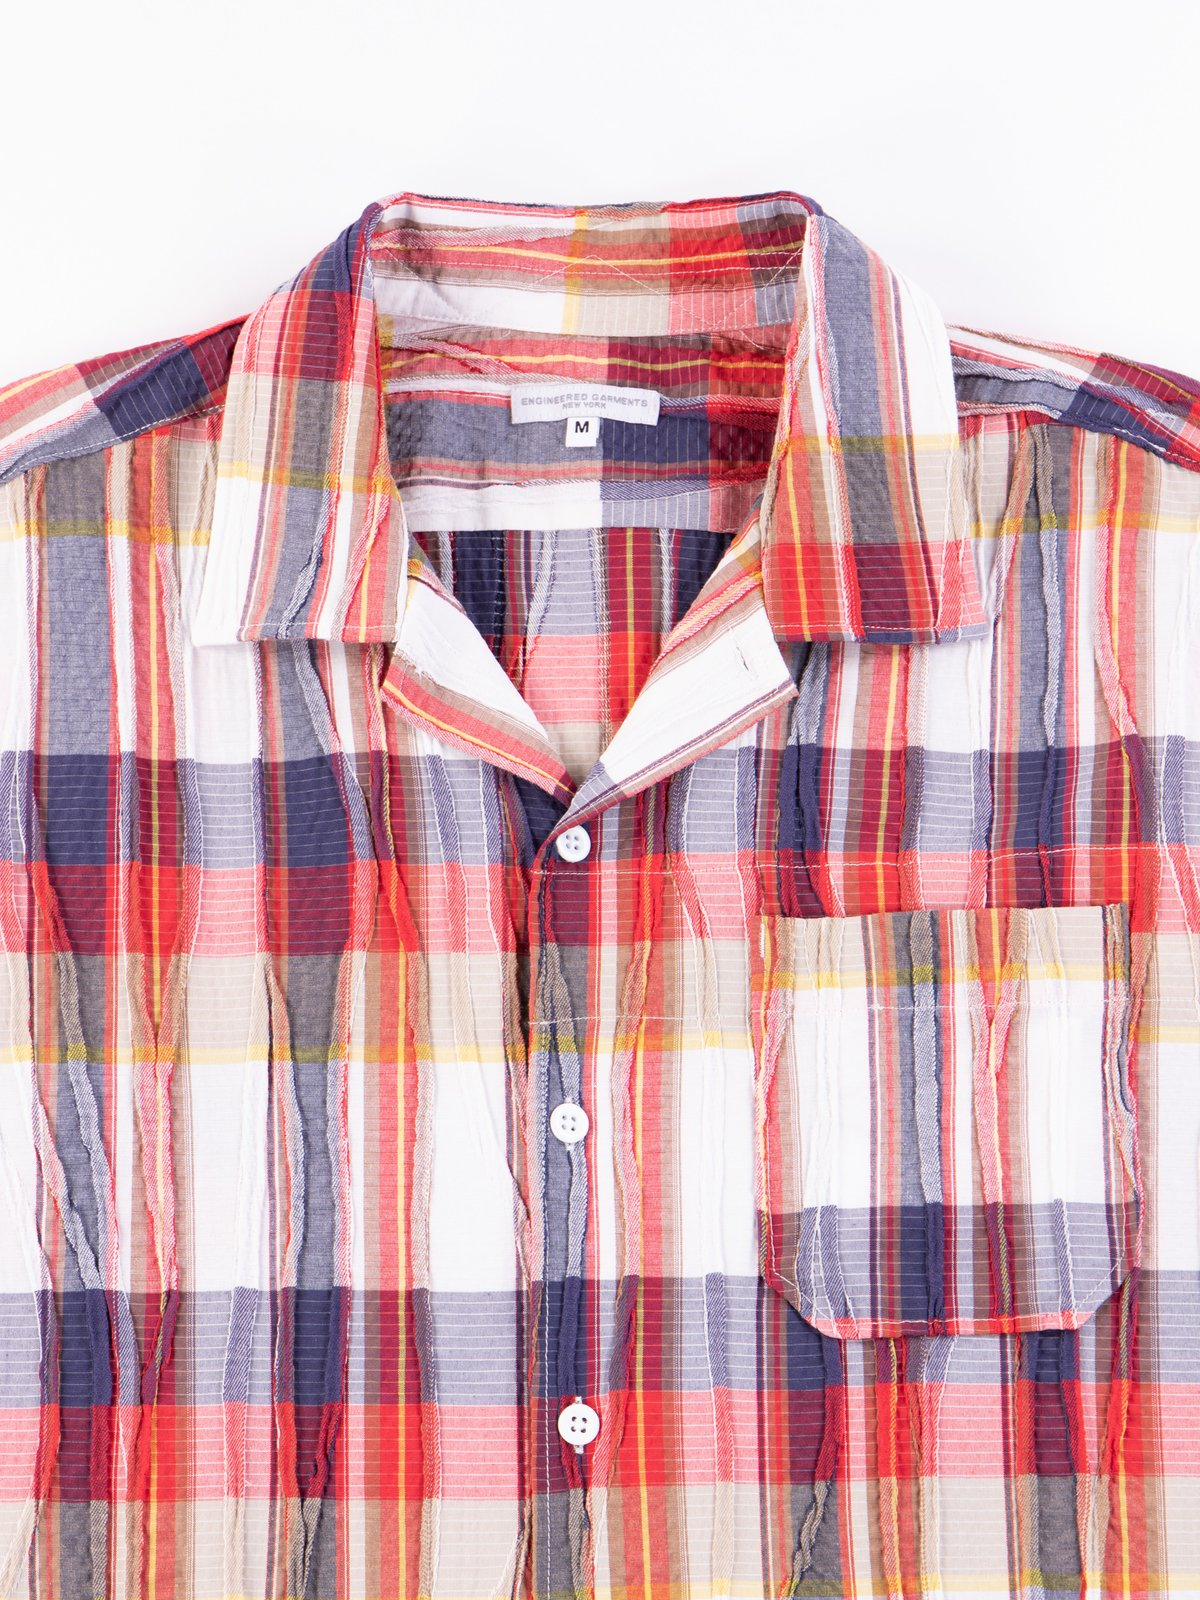 Red/White Cotton Crepe Check Camp Shirt - Image 4